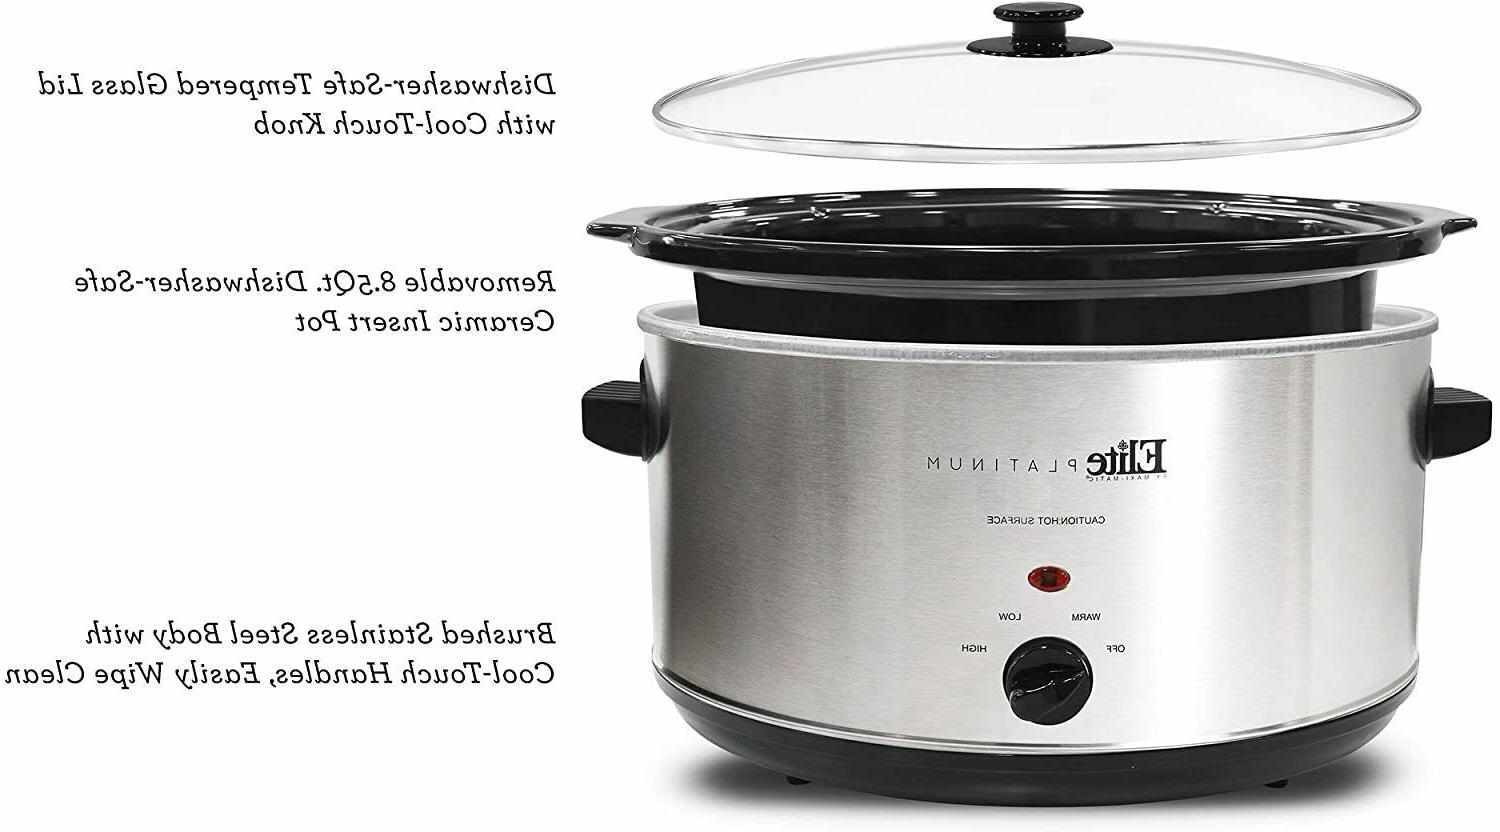 Slow Cooker Oval 8.5 Manual Removable